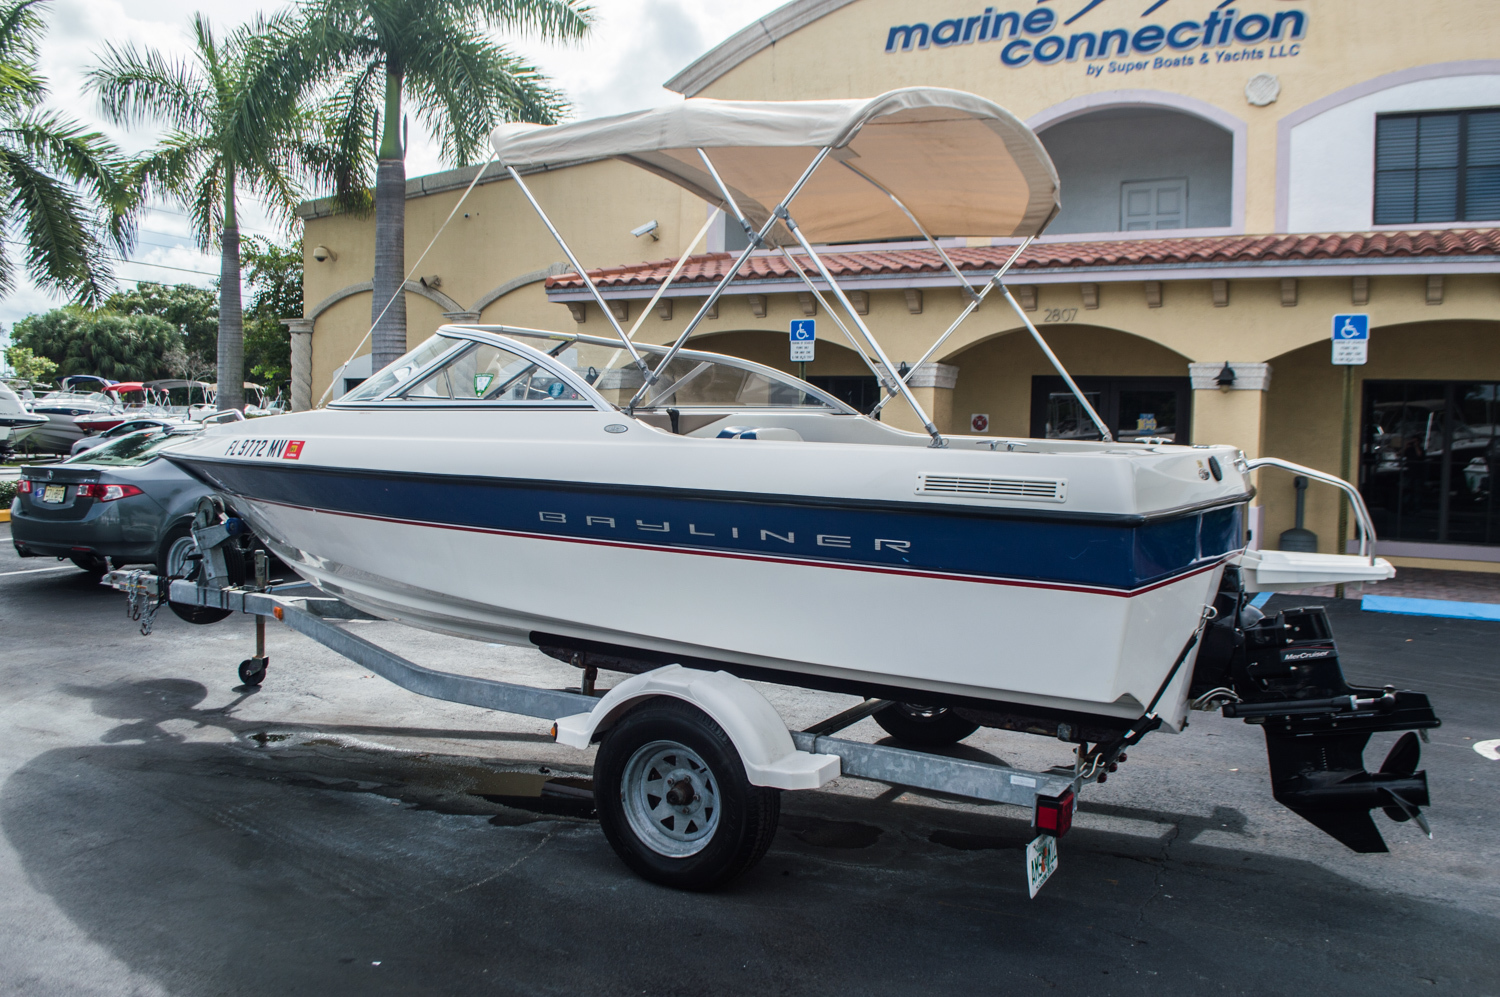 Thumbnail 1 for Used 2005 Bayliner 195 Classic boat for sale in West Palm Beach, FL